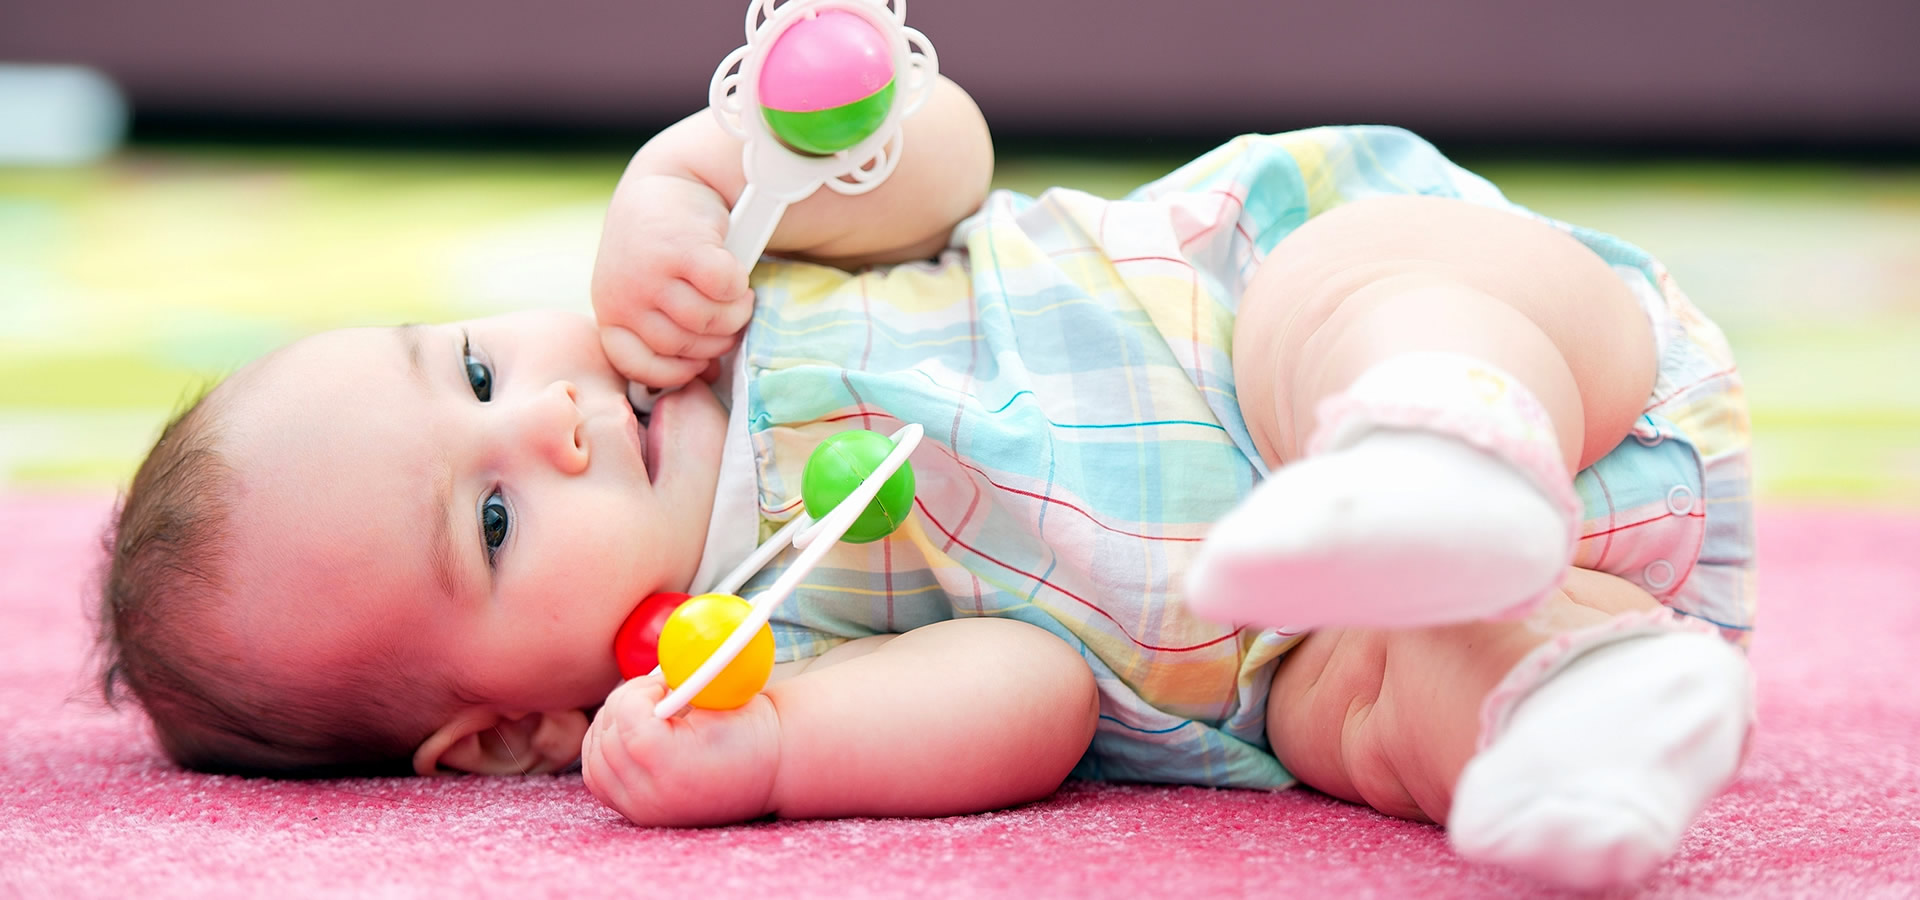 Spot Plus can keep your carpet clean so your young ones stay healthy! Even babies love carpet that's White Sock Clean.